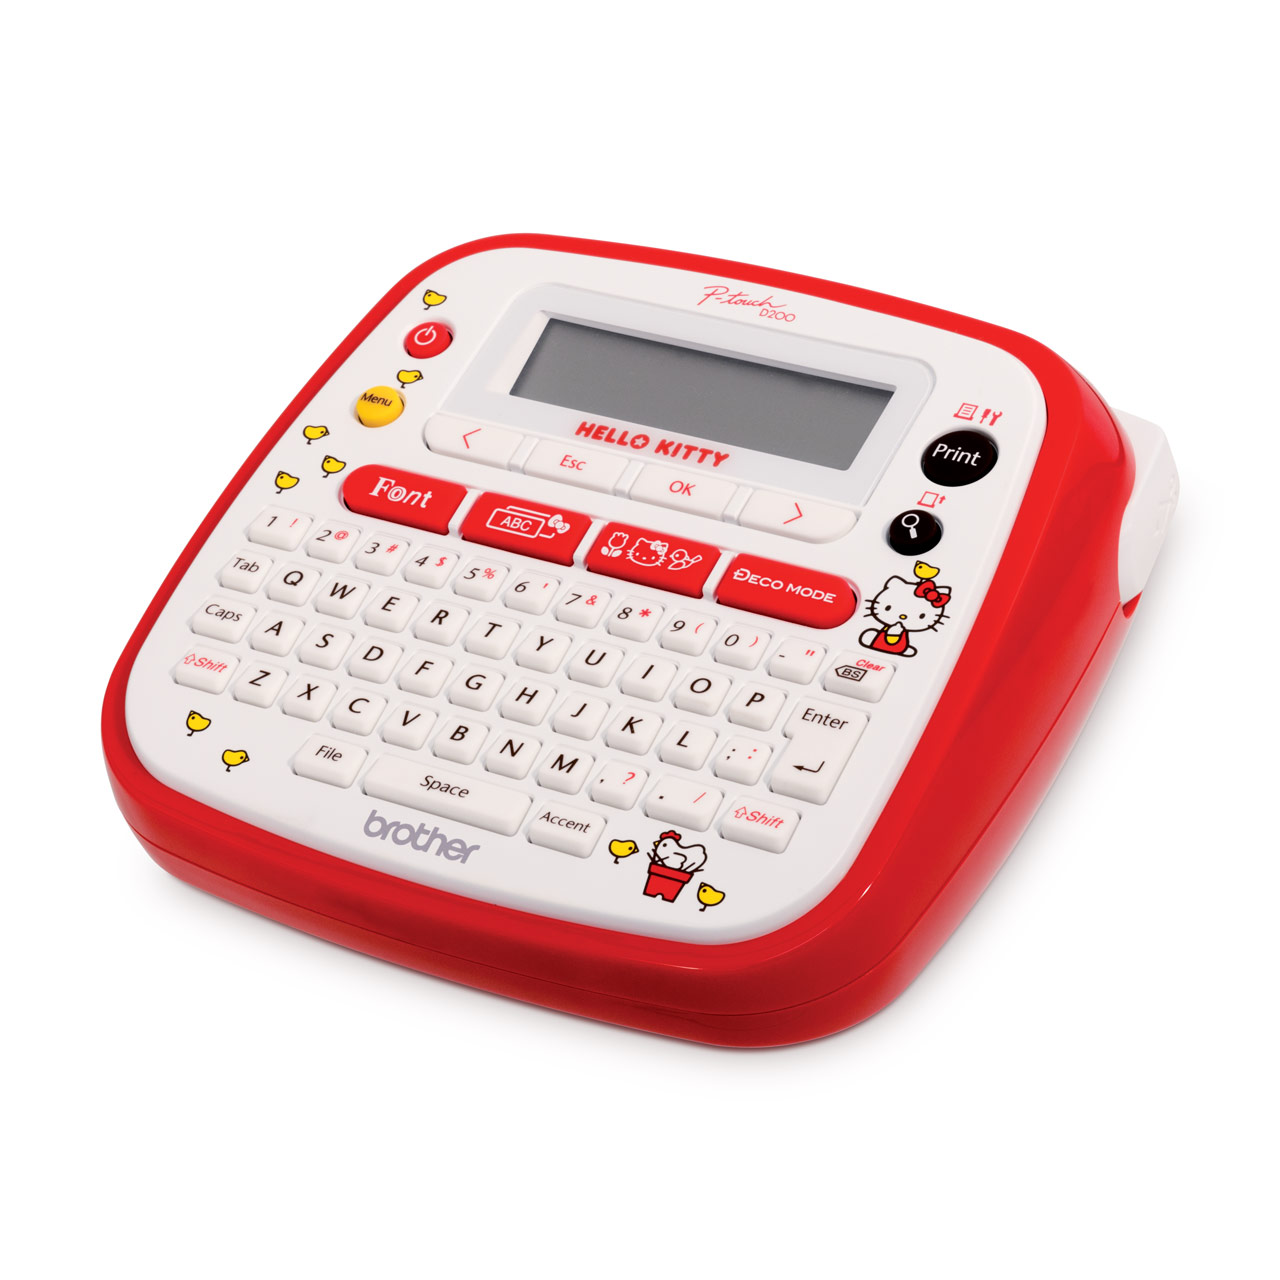 Pt D200kt Label Printer With In Built Hello Kitty Symbols And Frames